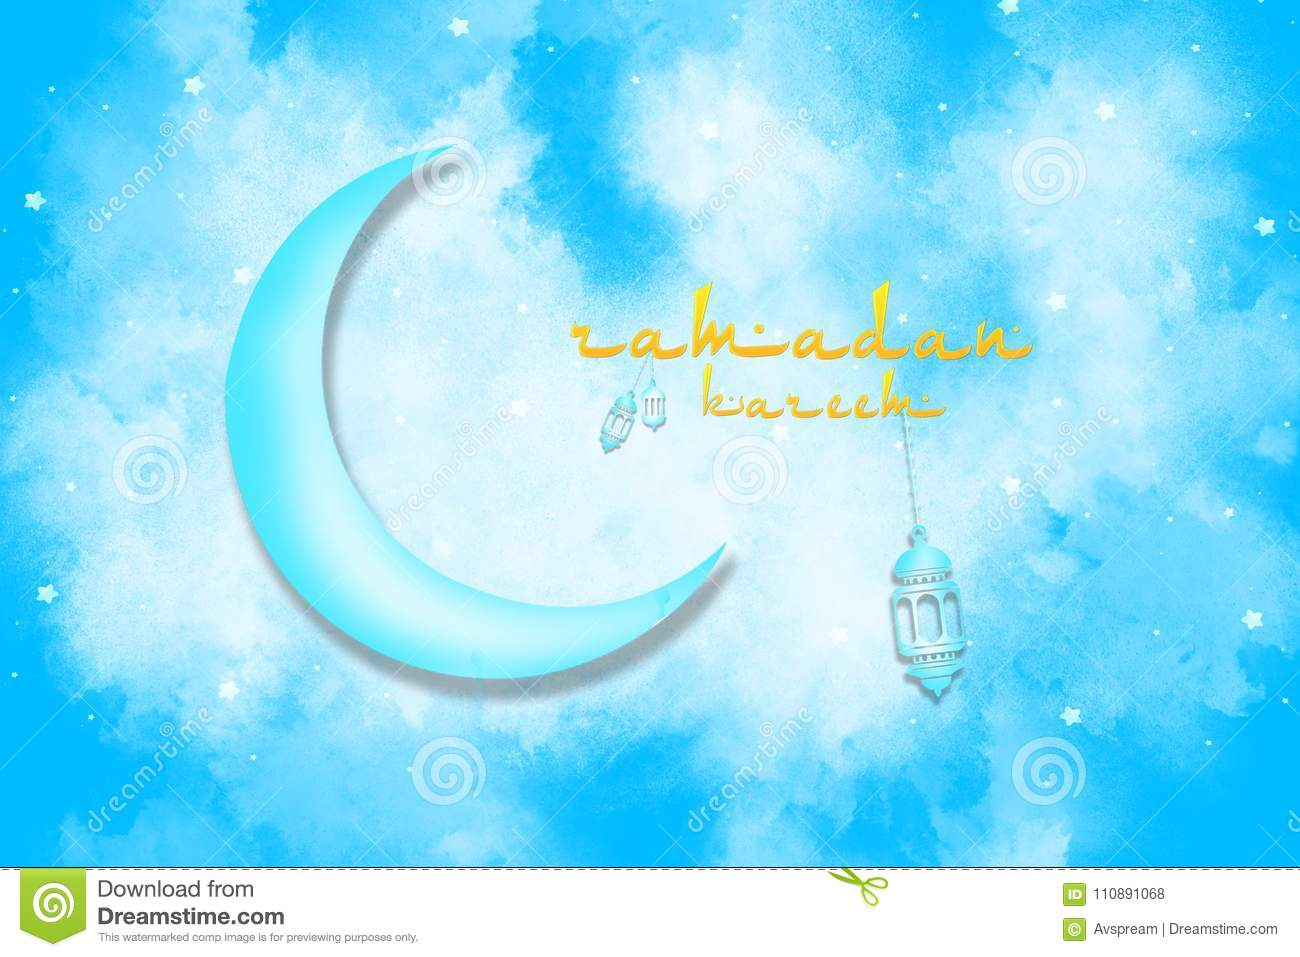 eid mubarak design background illustration for greeting card poster and banner designs blue color sky background stock illustration illustration of month arabic 110891068 https www dreamstime com eid mubarak design background illustration greeting card poster banner designs blue color sky background eid mubarak image110891068